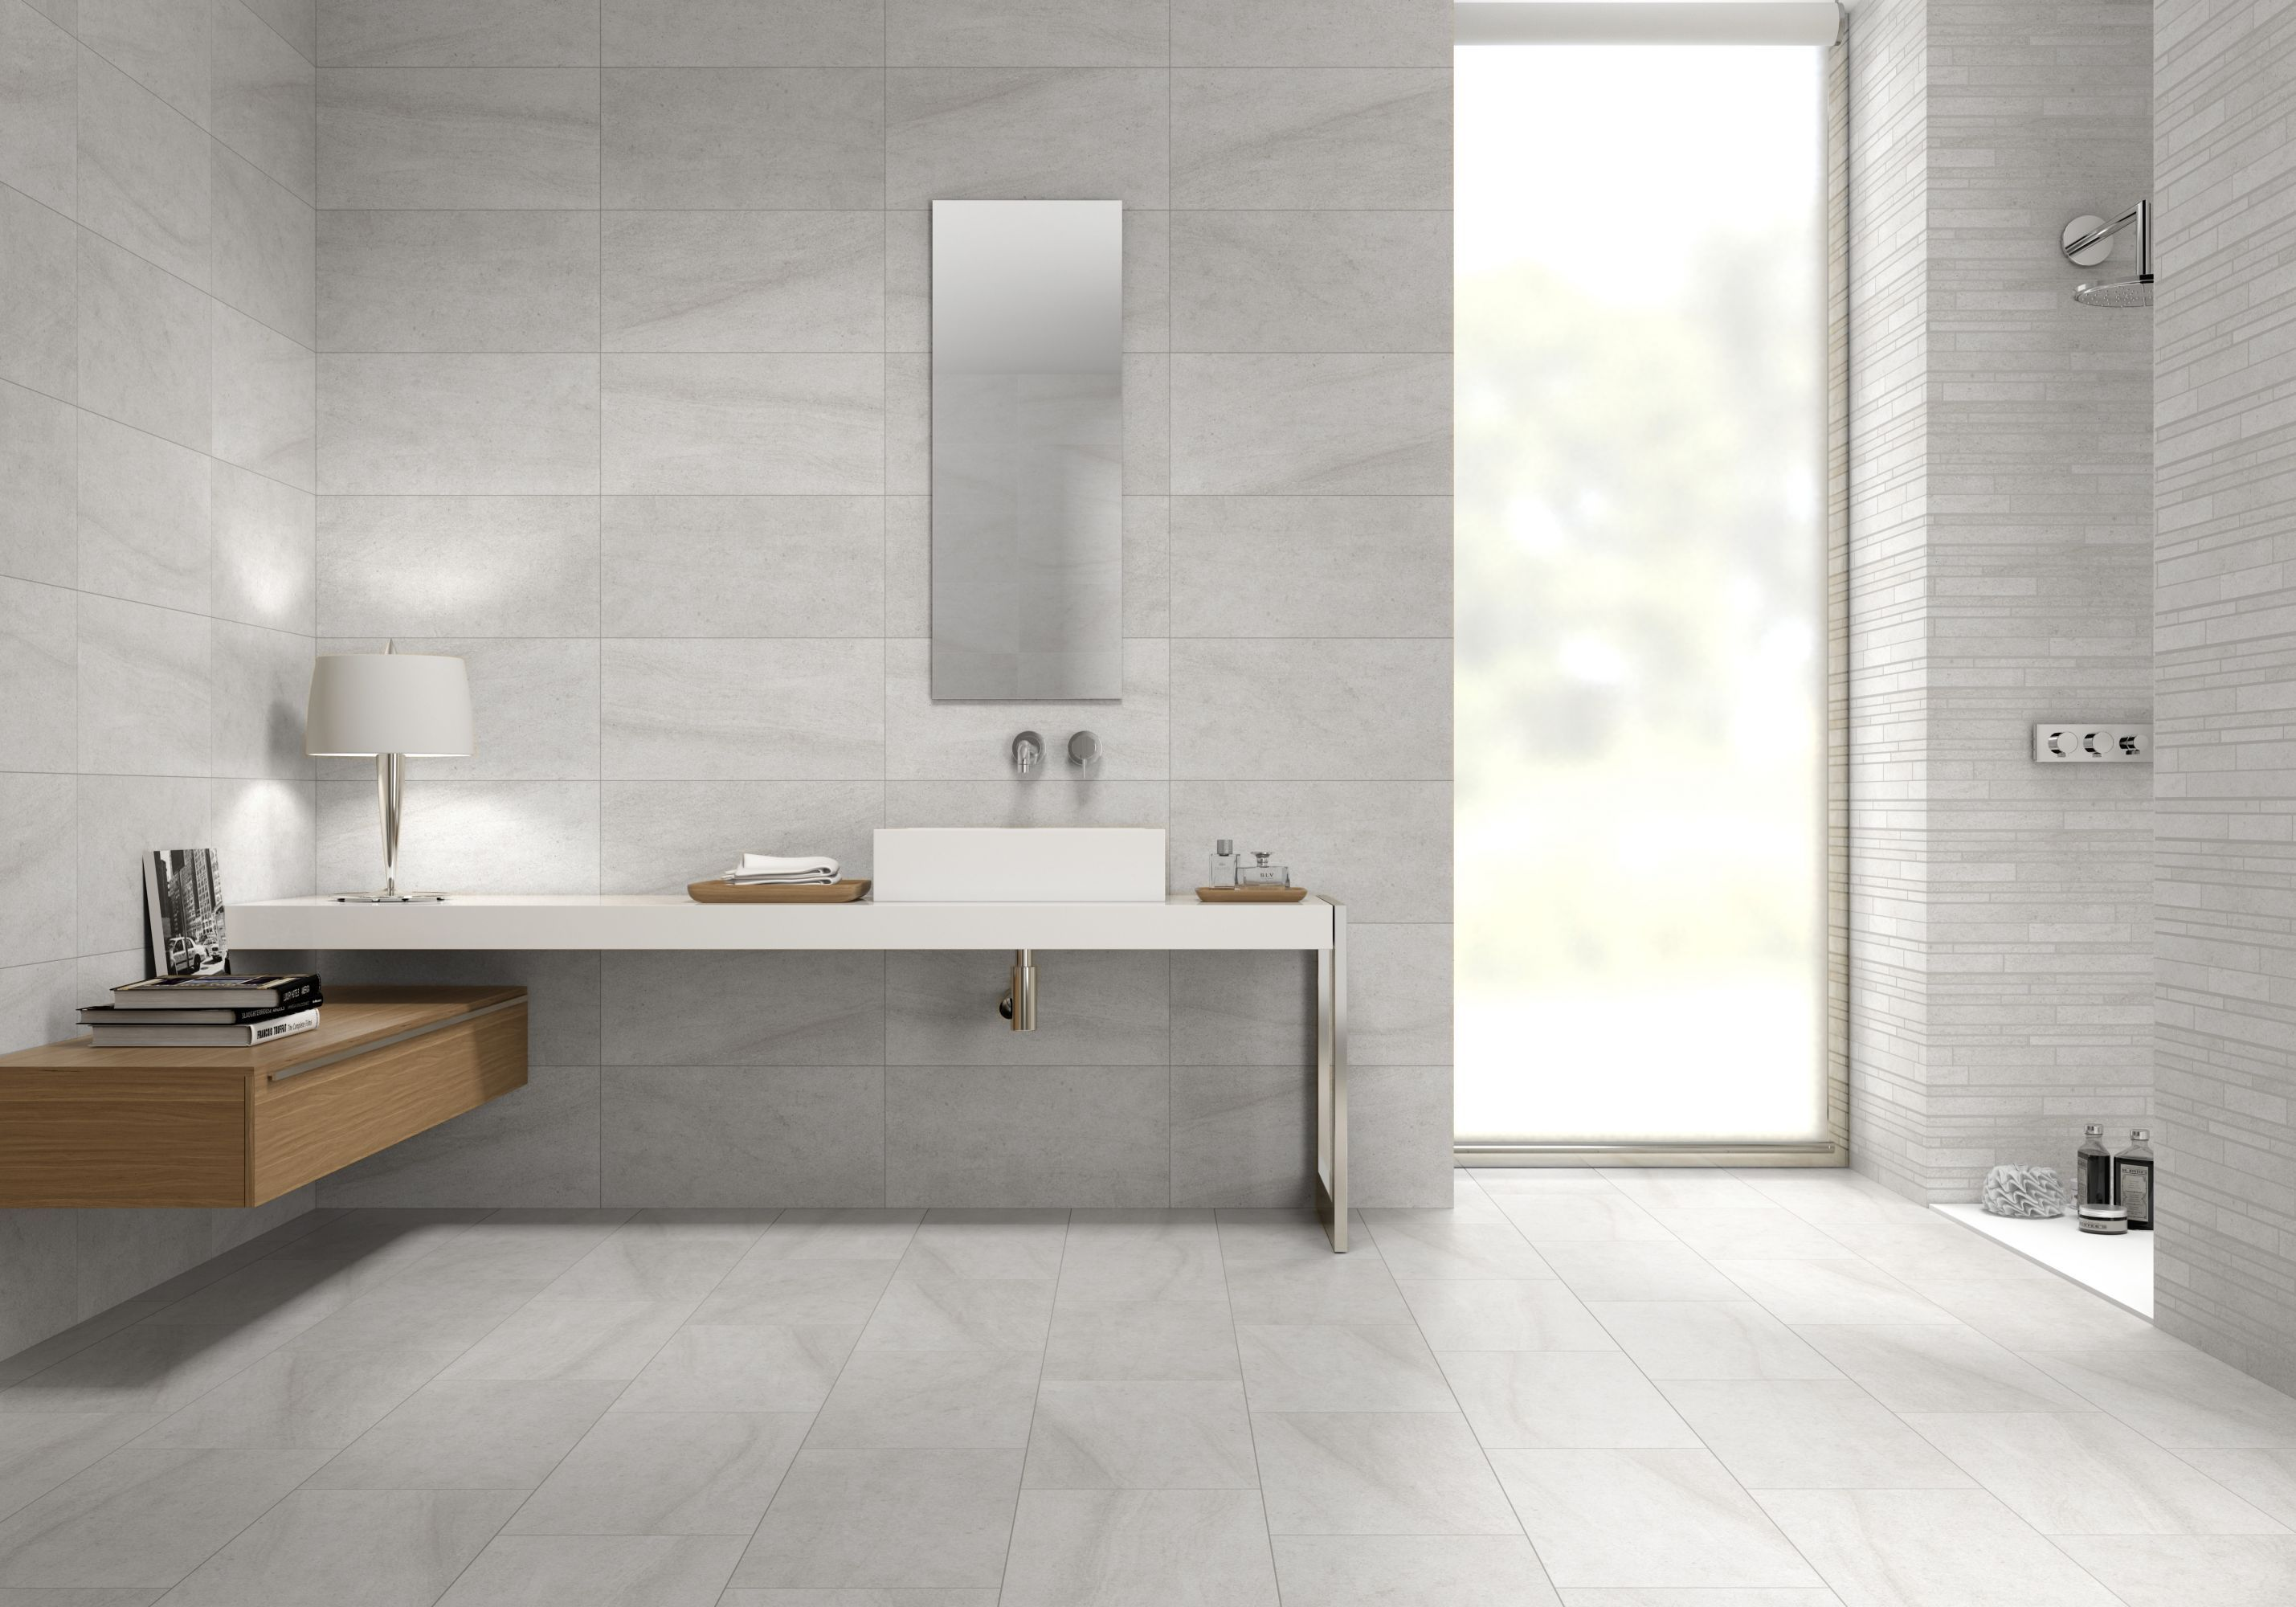 Charmant The Limestone Matt Almond Bathroom Floor Tiles Range